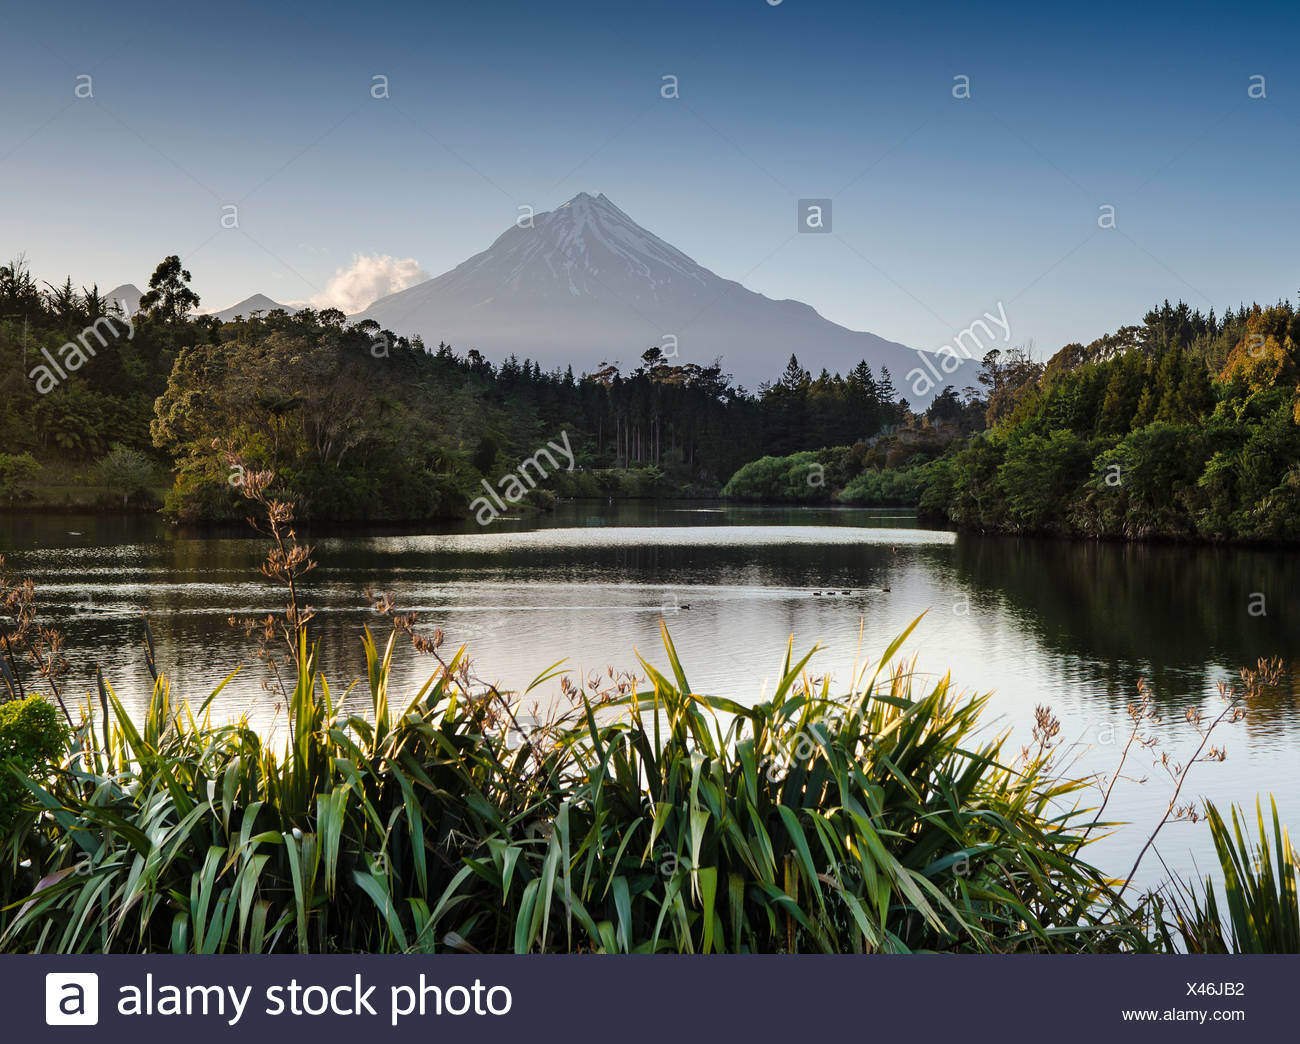 Currently inactive volcano, Mt Egmont, Mt Taranaki, Lake Mangamahoe reservoir, dam, North Island, New Zealand - Stock Image